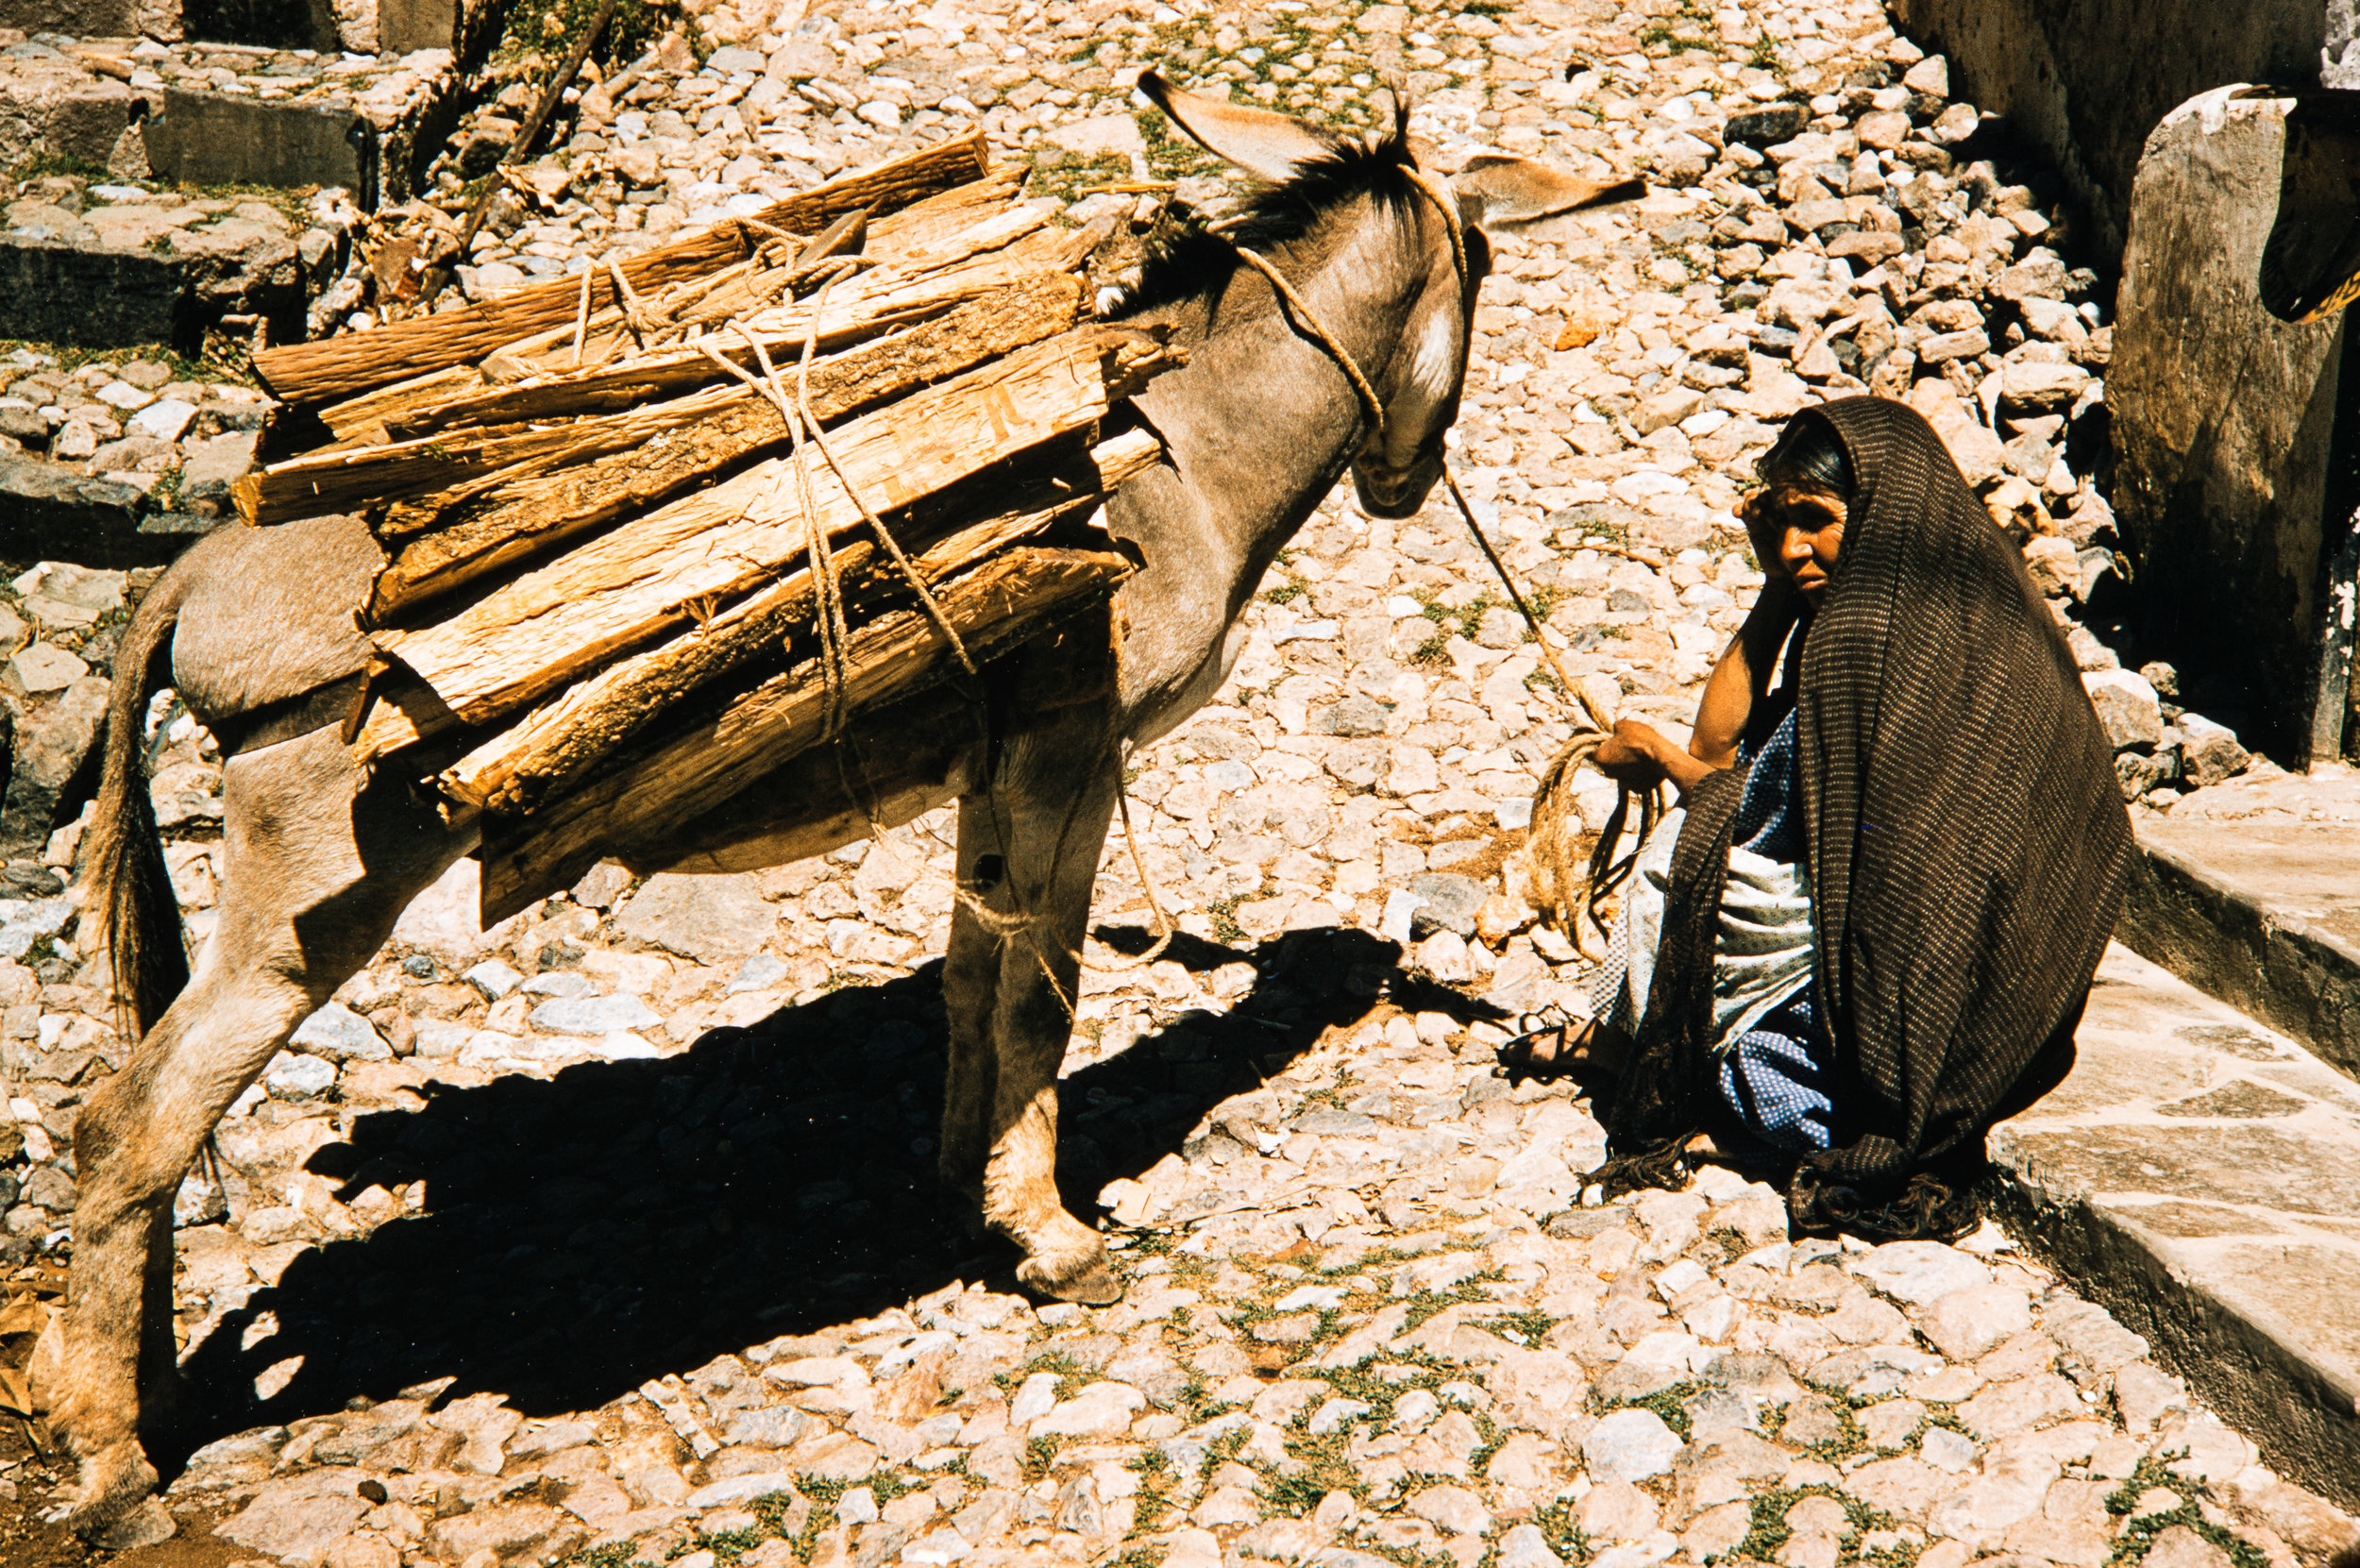 Woman on cobblestone with donkey, Mexico, 1957